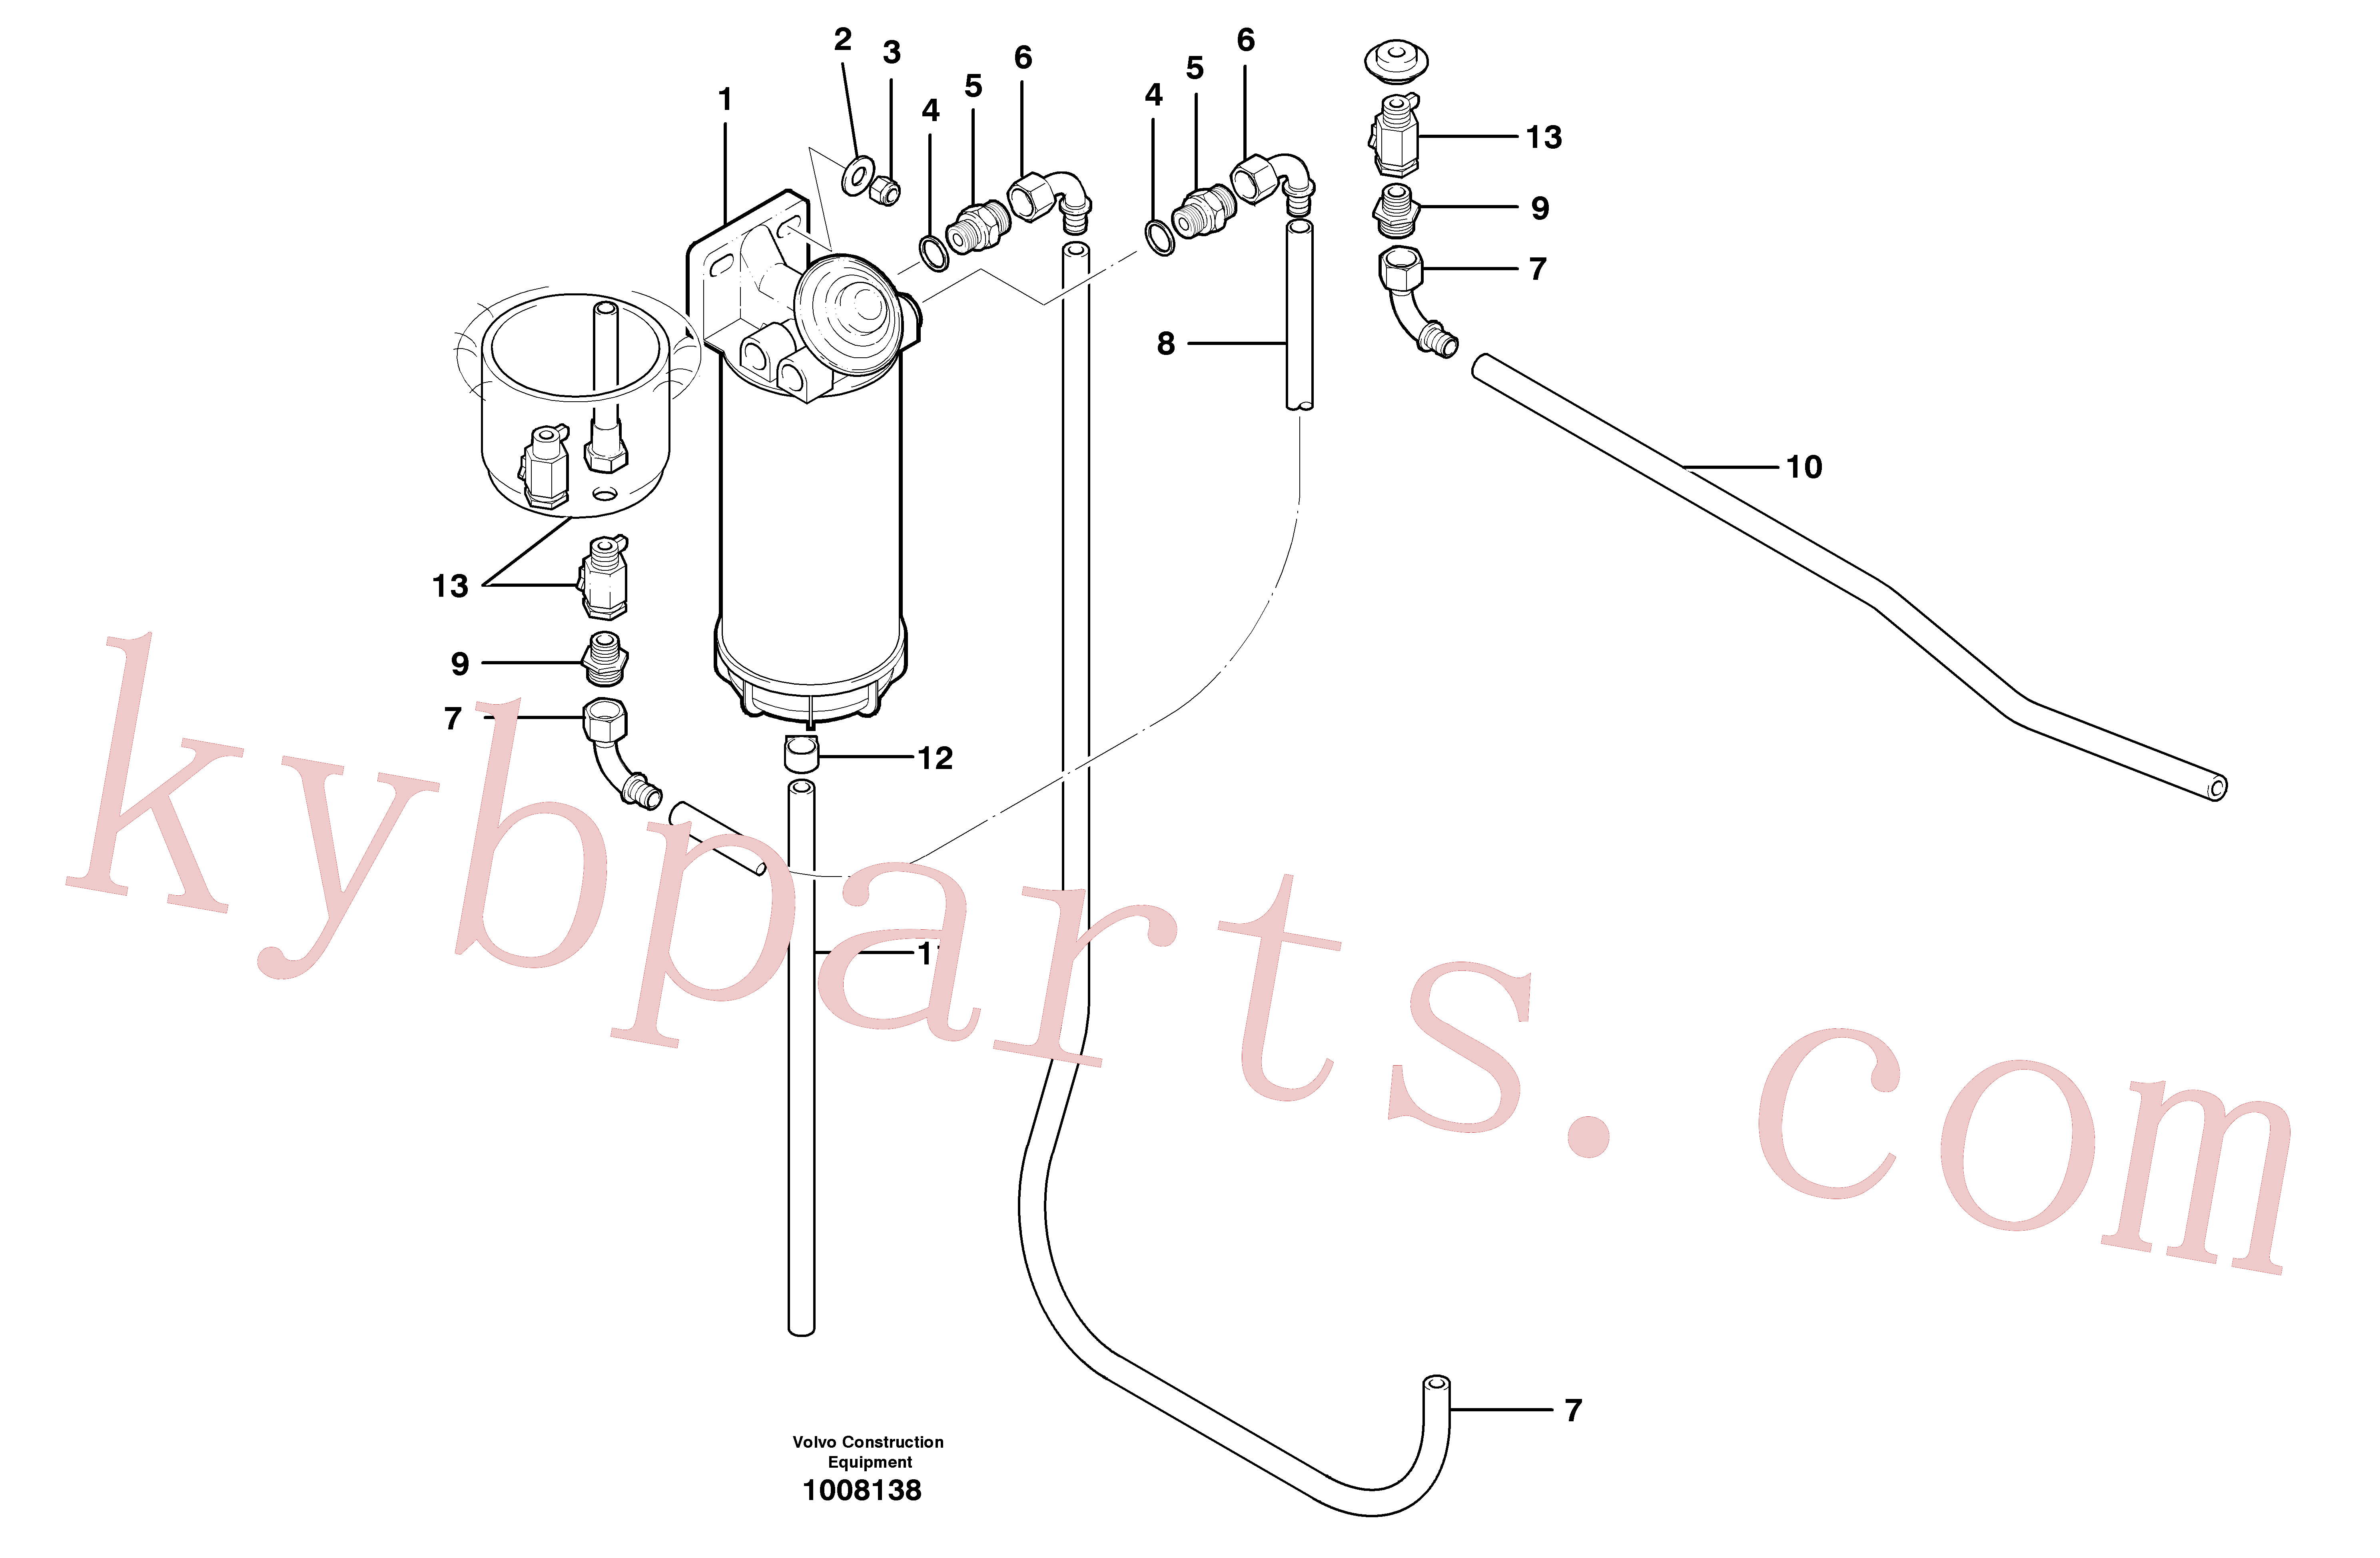 SA9426-20050 for Volvo Fuel circuit(1008138 assembly)